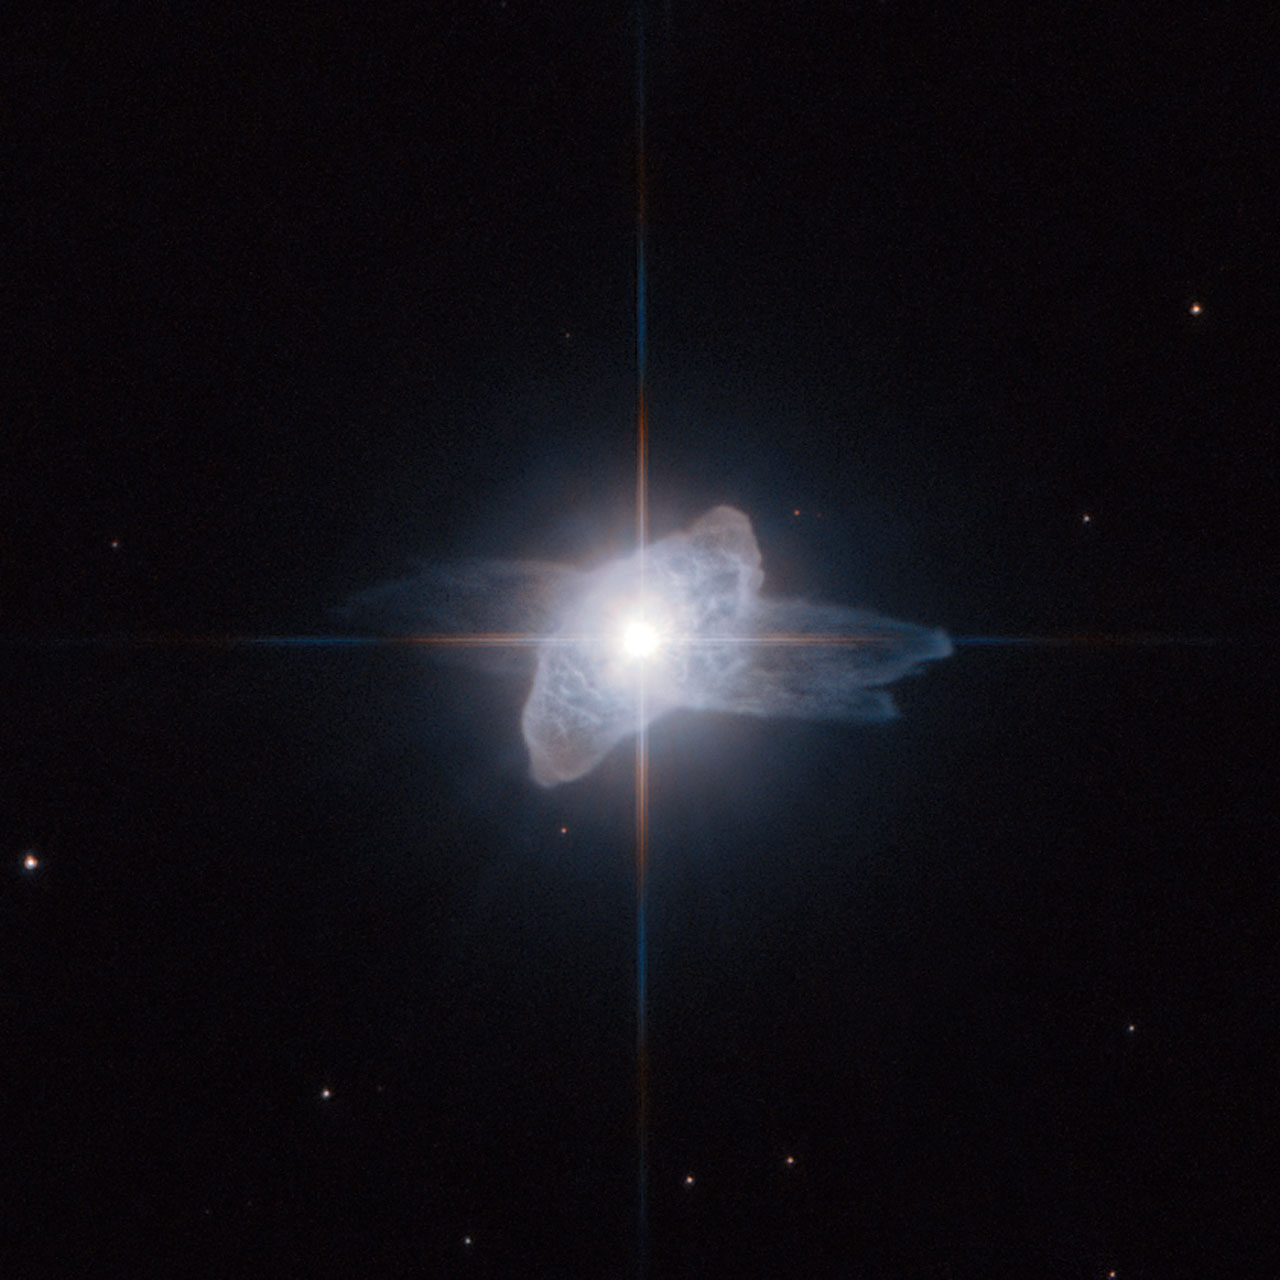 A dying star starts shedding its skin